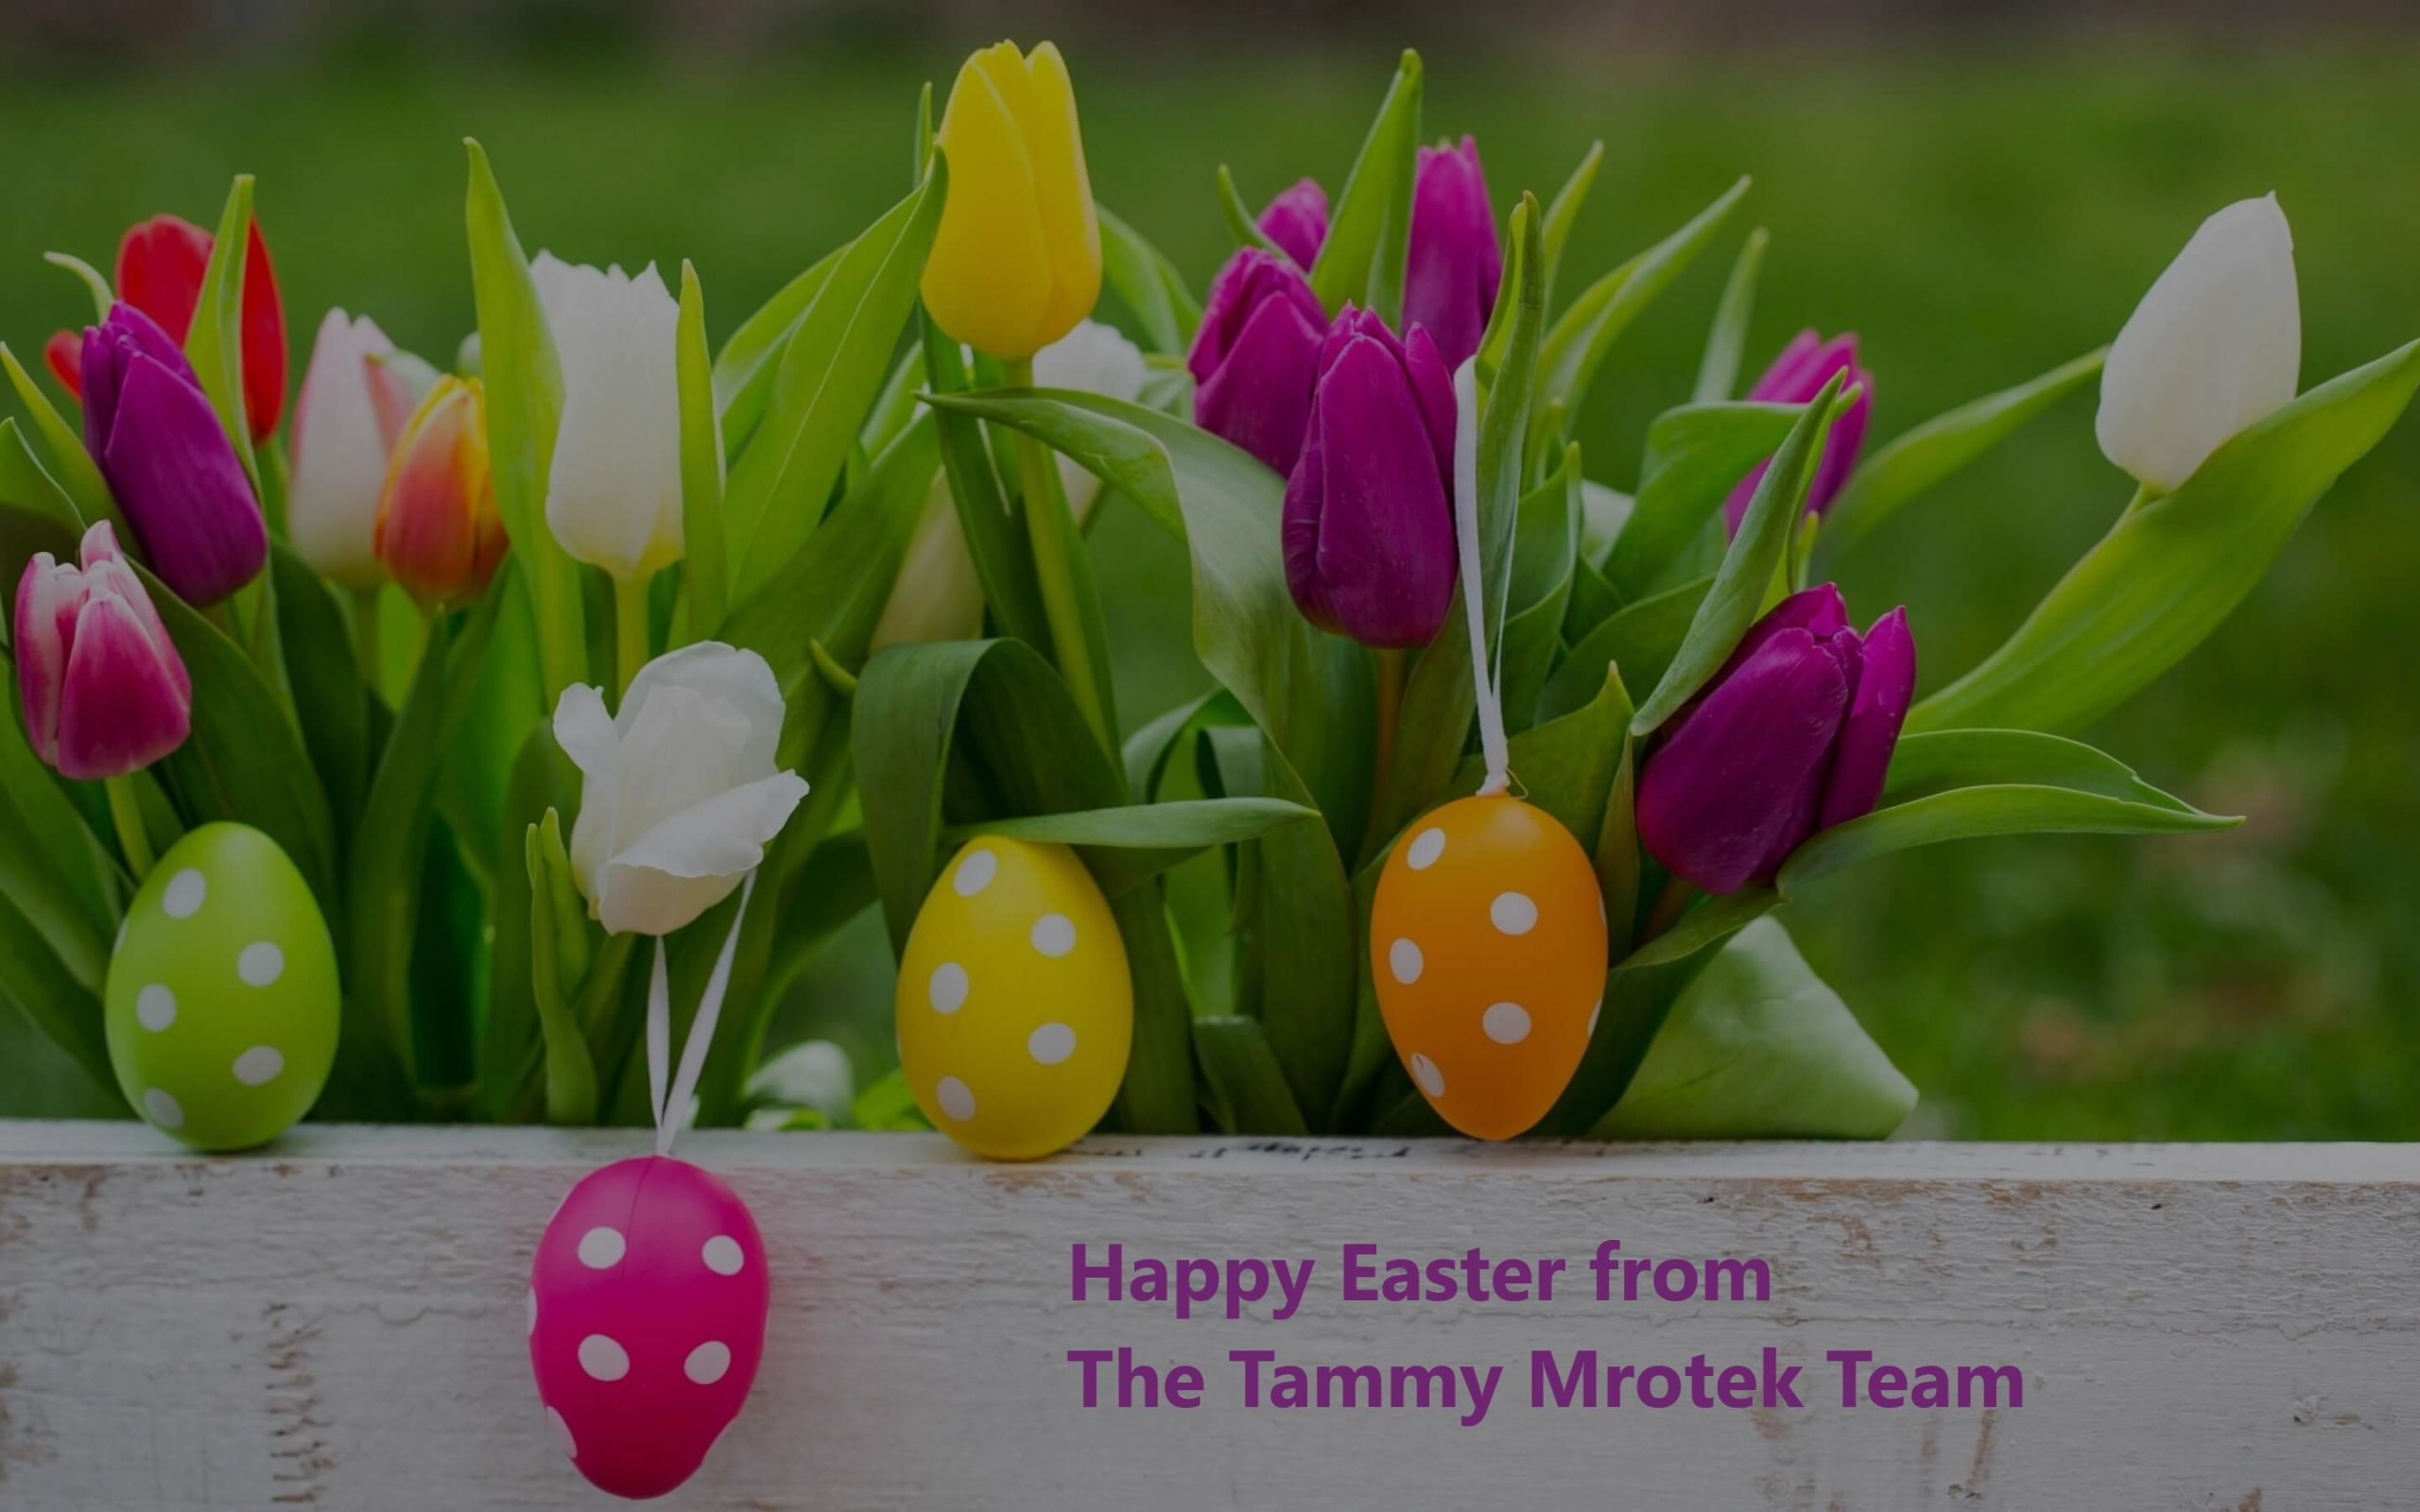 Happy Easter From The Tammy Mrotek Team, Easter 2019!